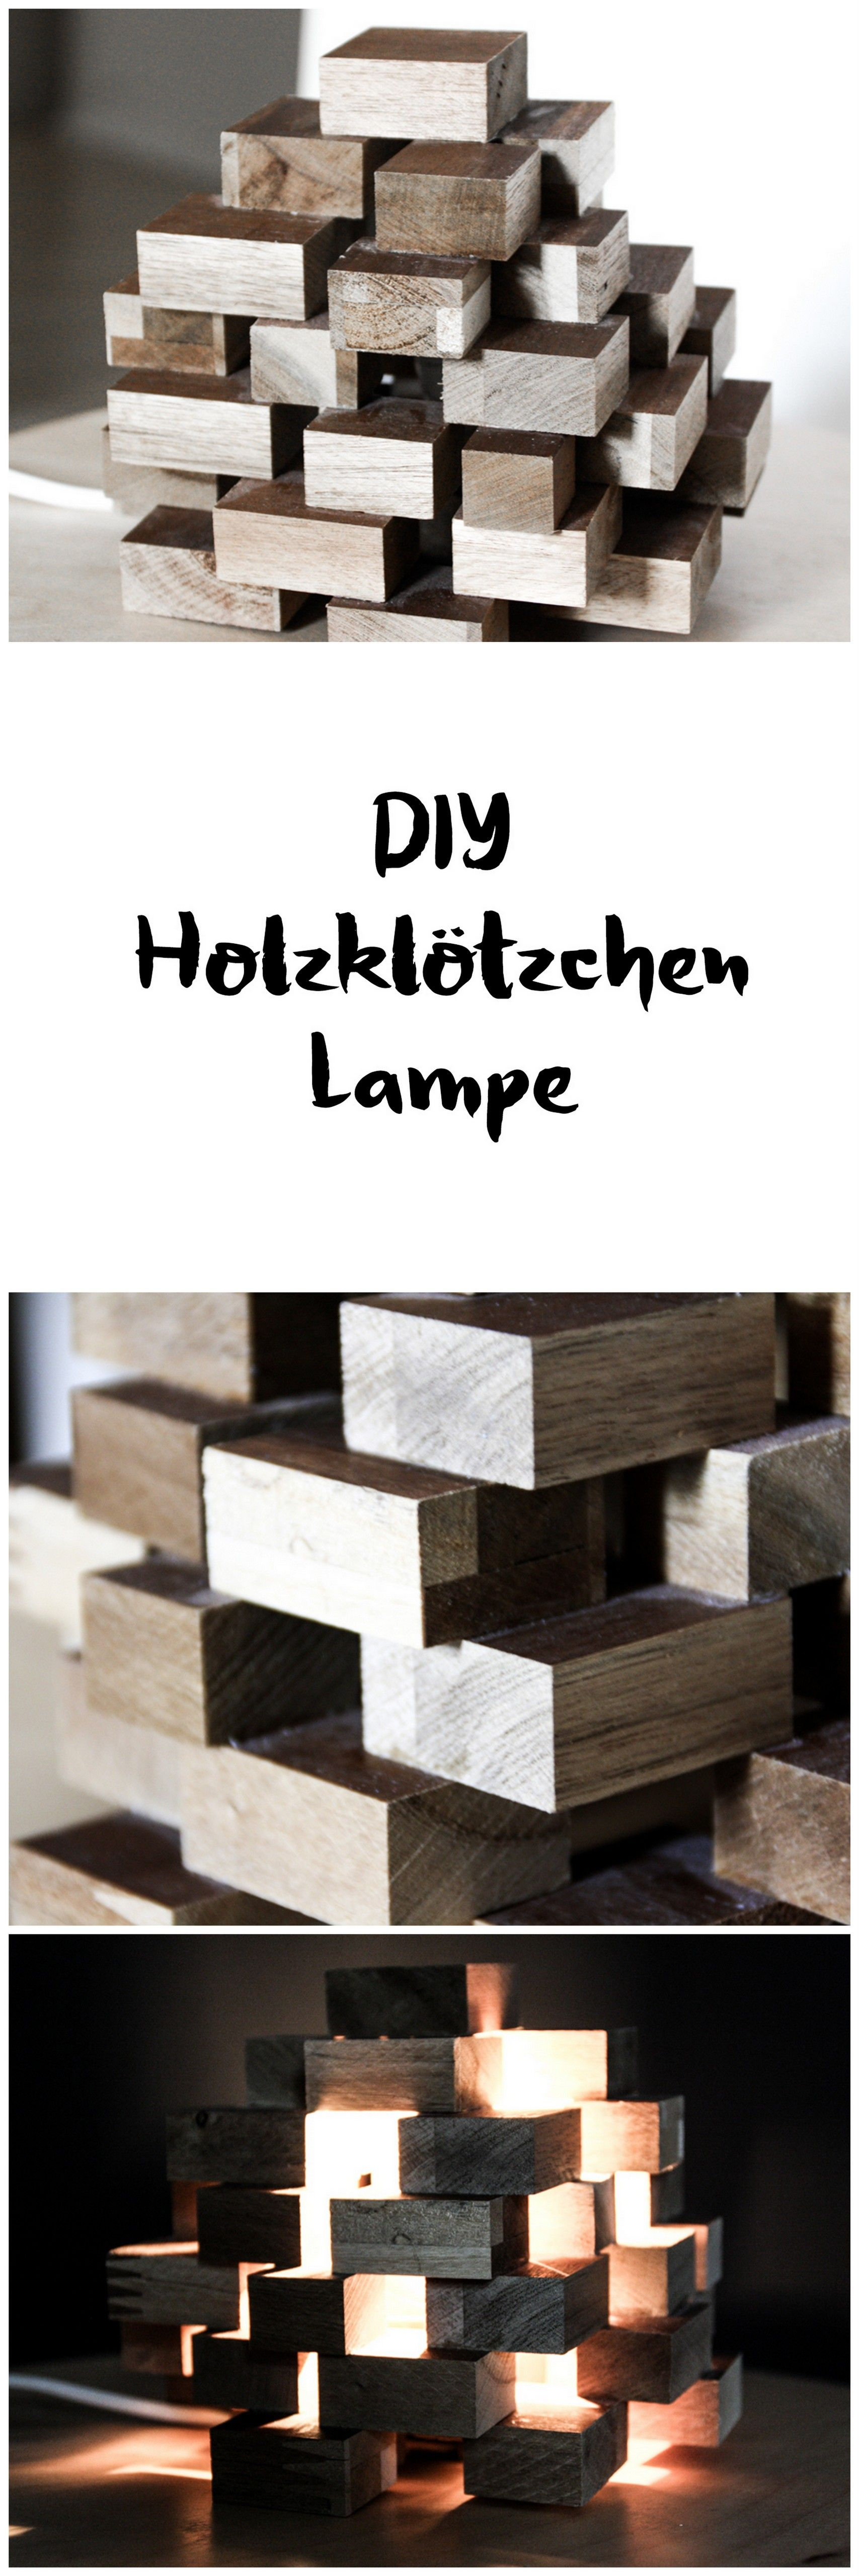 Diy Schlafzimmer Lampe Diy Klötzchen Lampe Aus Holz Diy Lighting Projects And